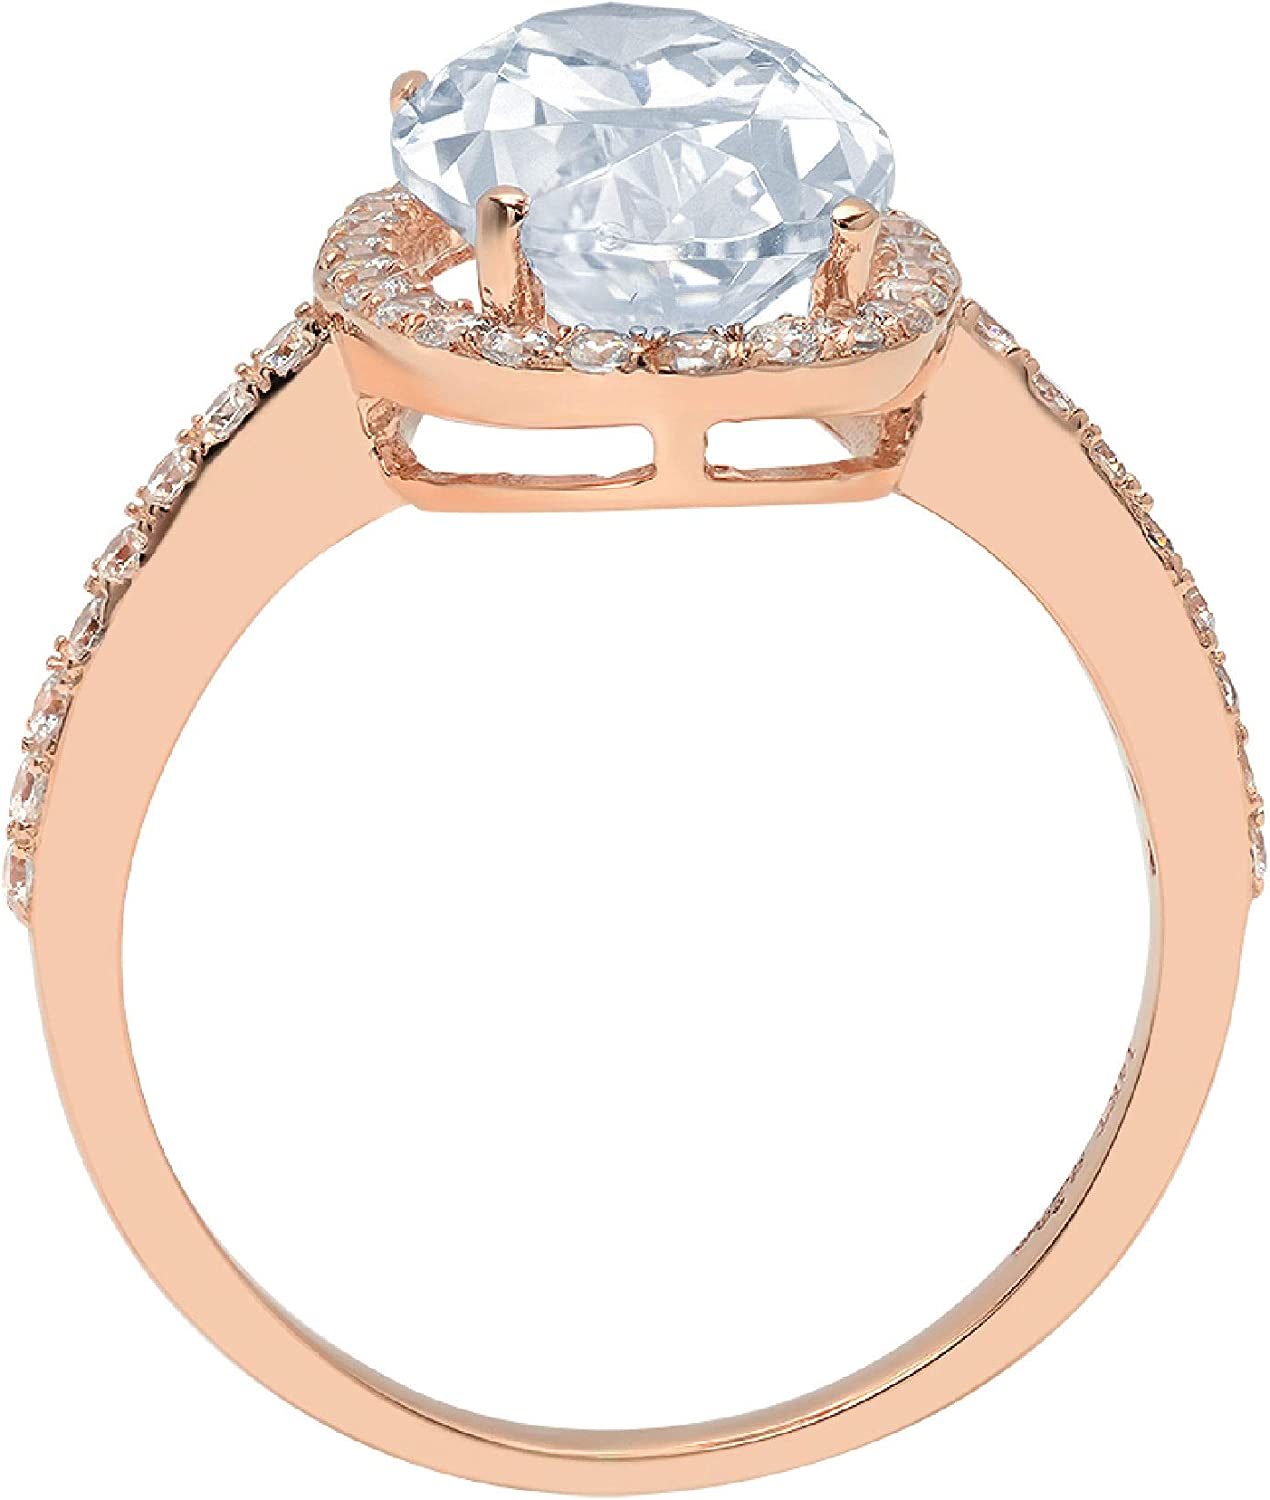 Clara Pucci 2.96 Brilliant Oval Cut Solitaire Accent Halo Stunning Genuine Flawless Natural Aquamarine Gem Designer Modern Ring Solid 18K Rose Gold